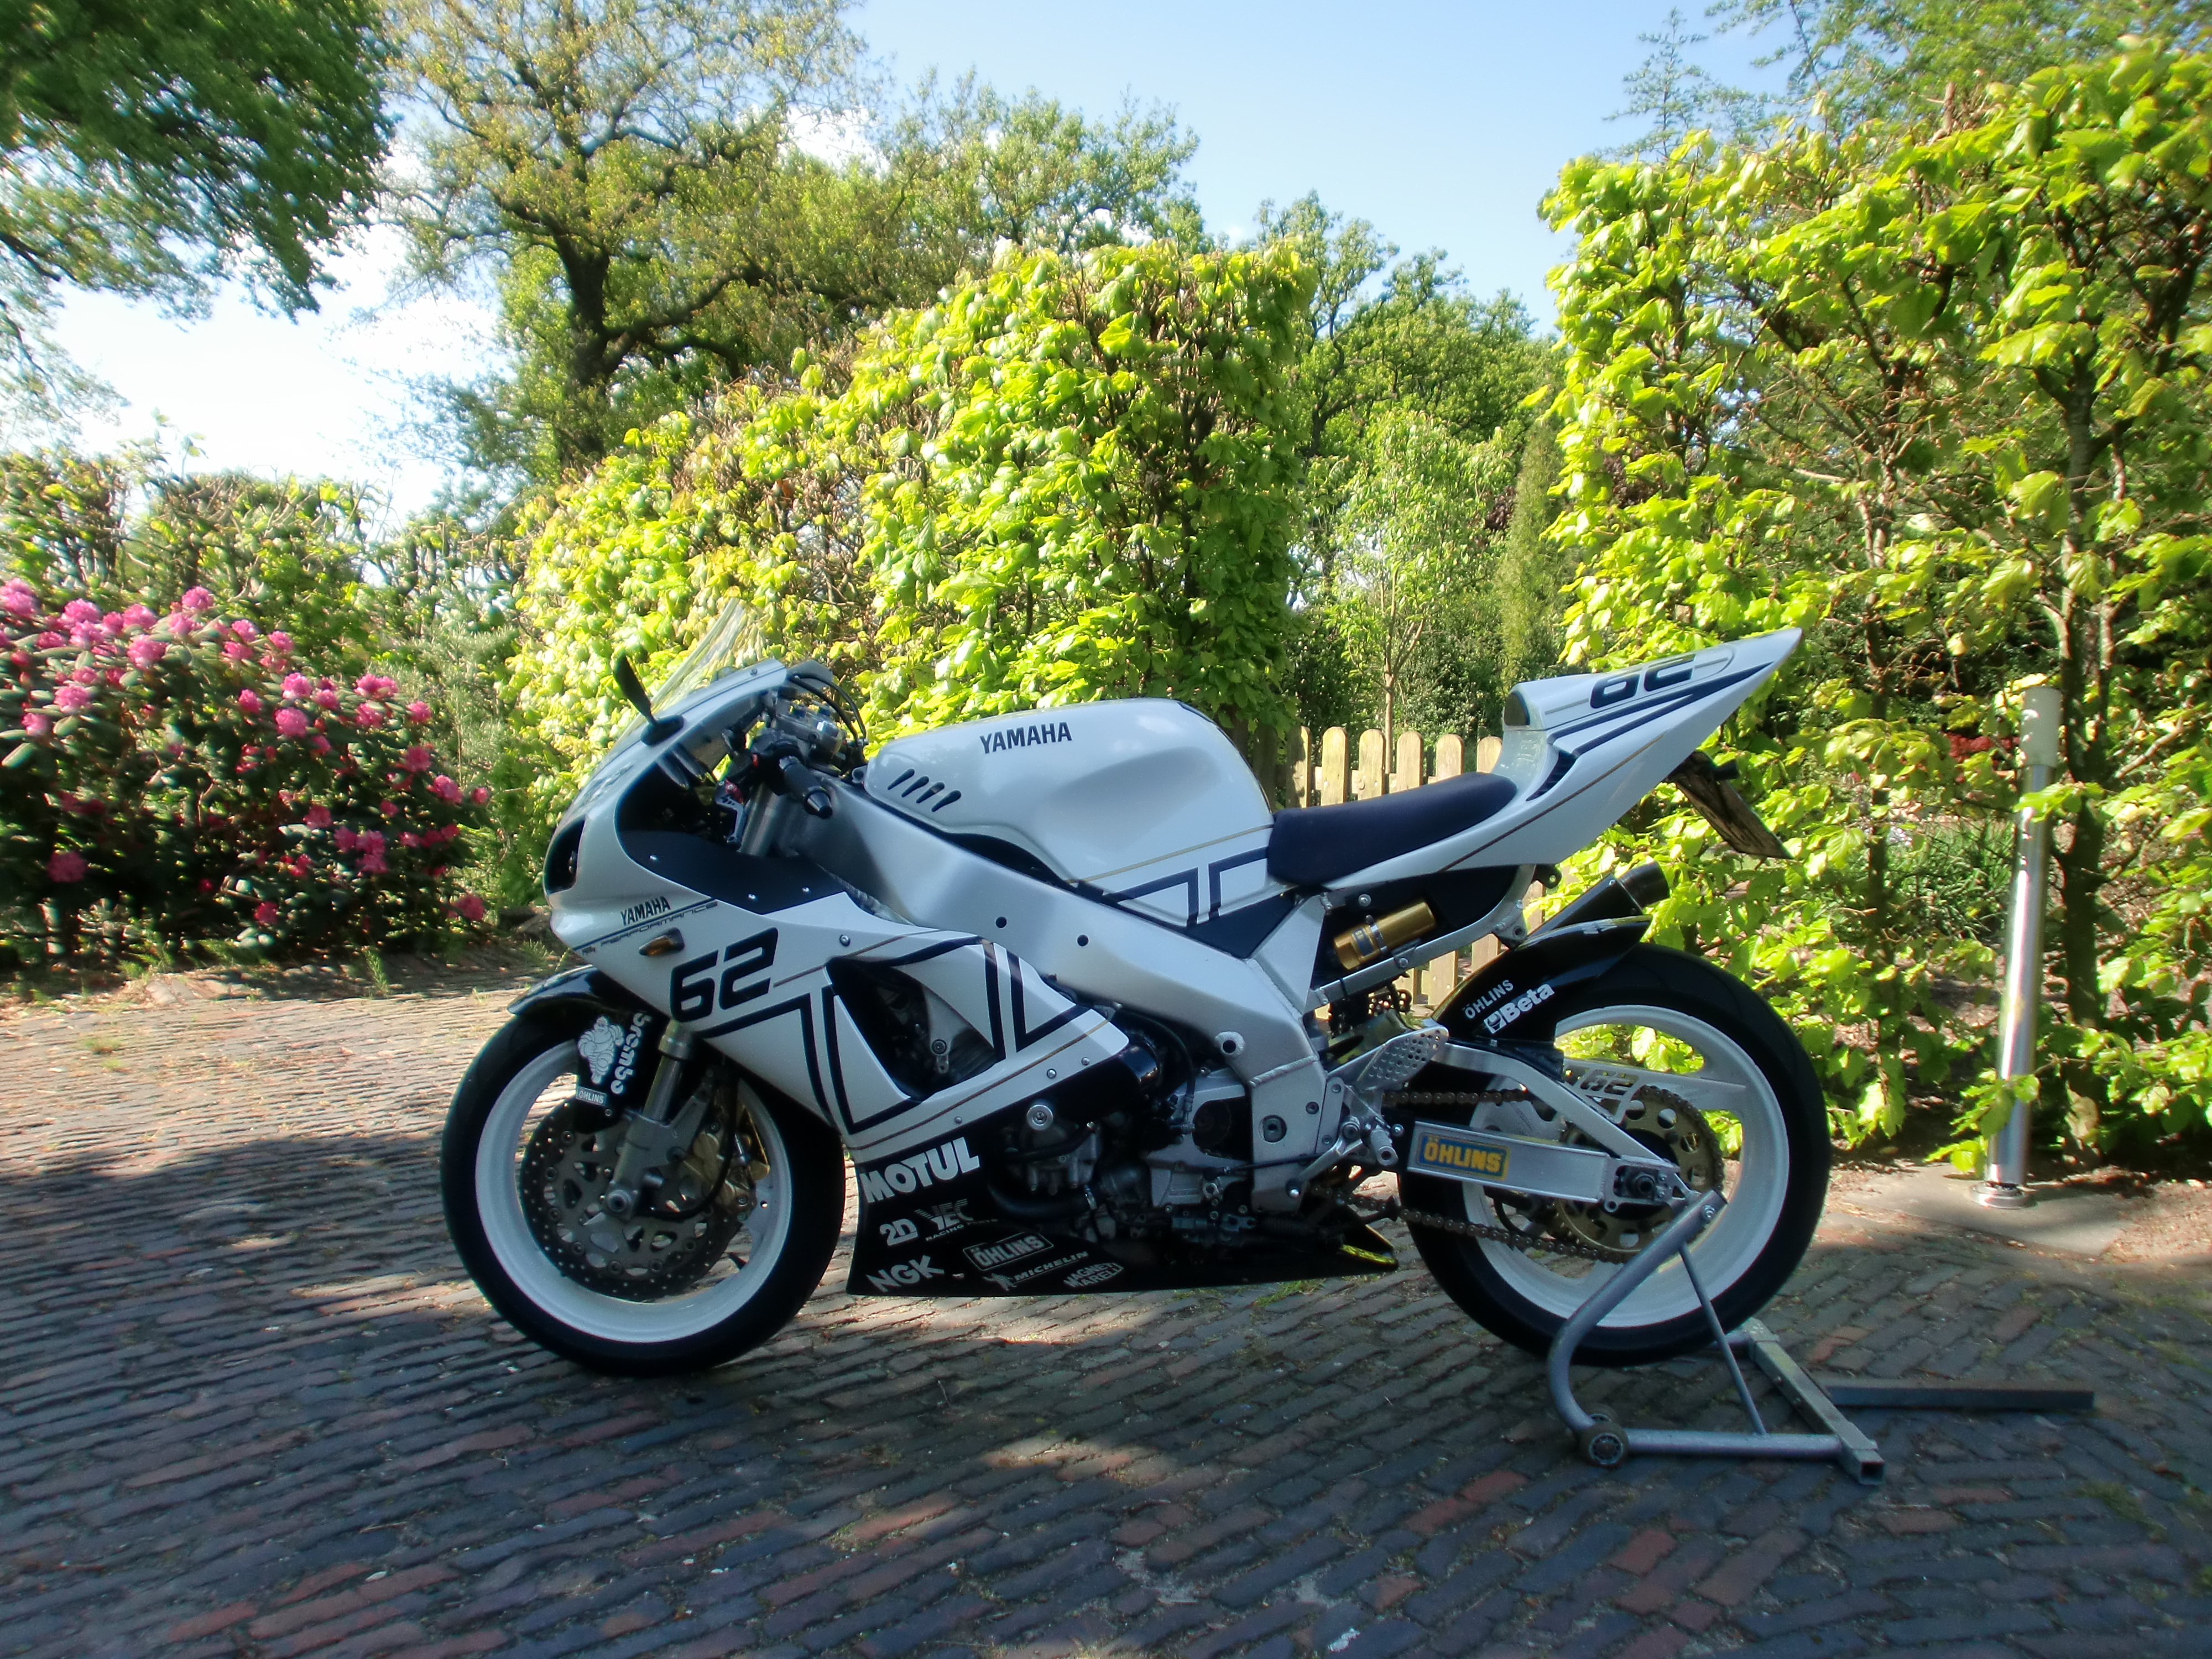 Yzf 1000 rr special edition yamaha forum your for Yamaha rr 1000